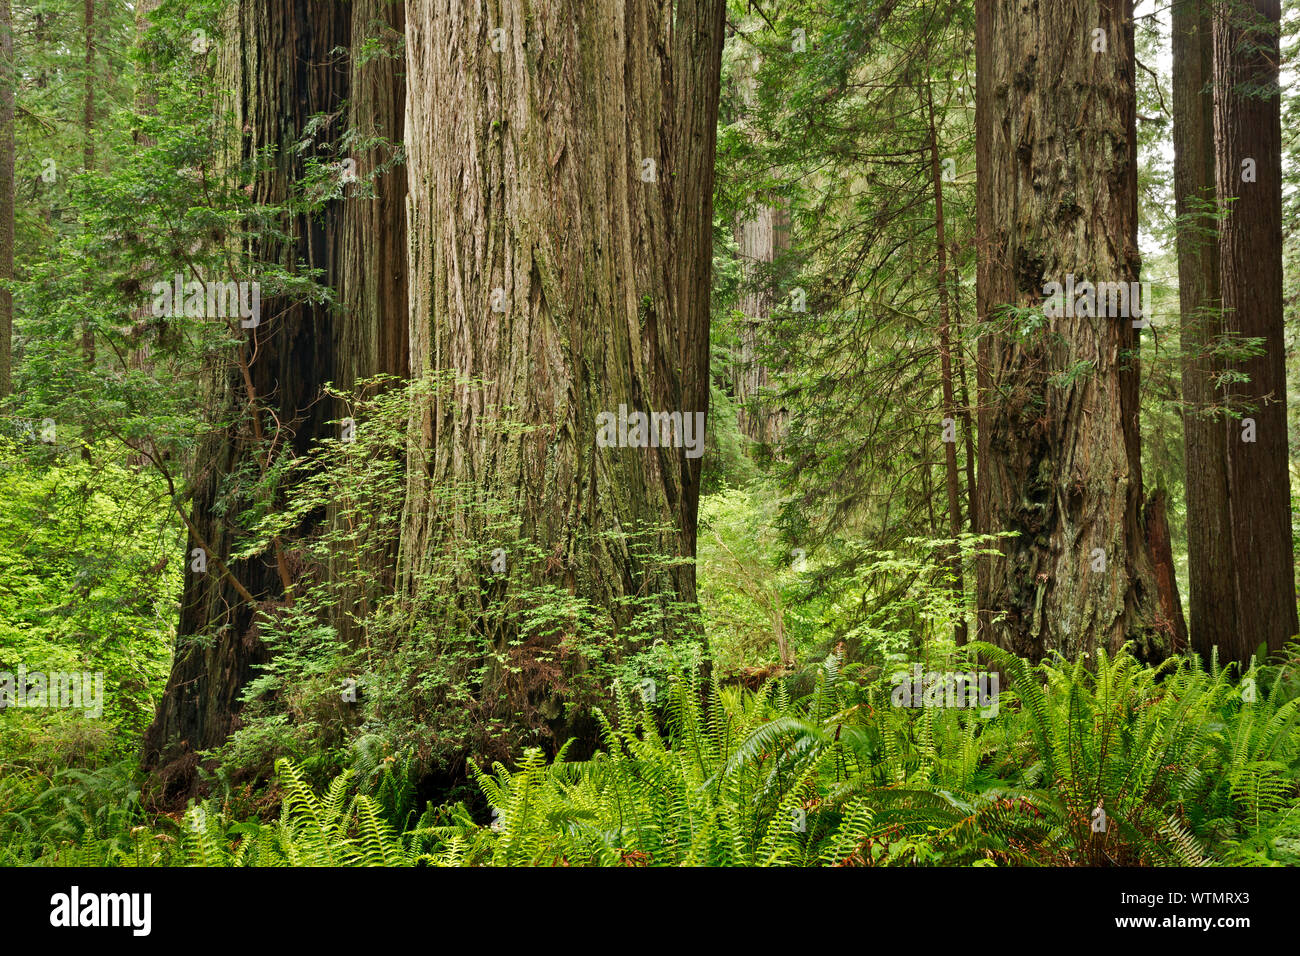 CA03541-00...CALIFORNIA - Redwood forest along the Prairie Creek Trail in Prairie Creek Redwoods State Park; part of the Redwoods National and State P Stock Photo